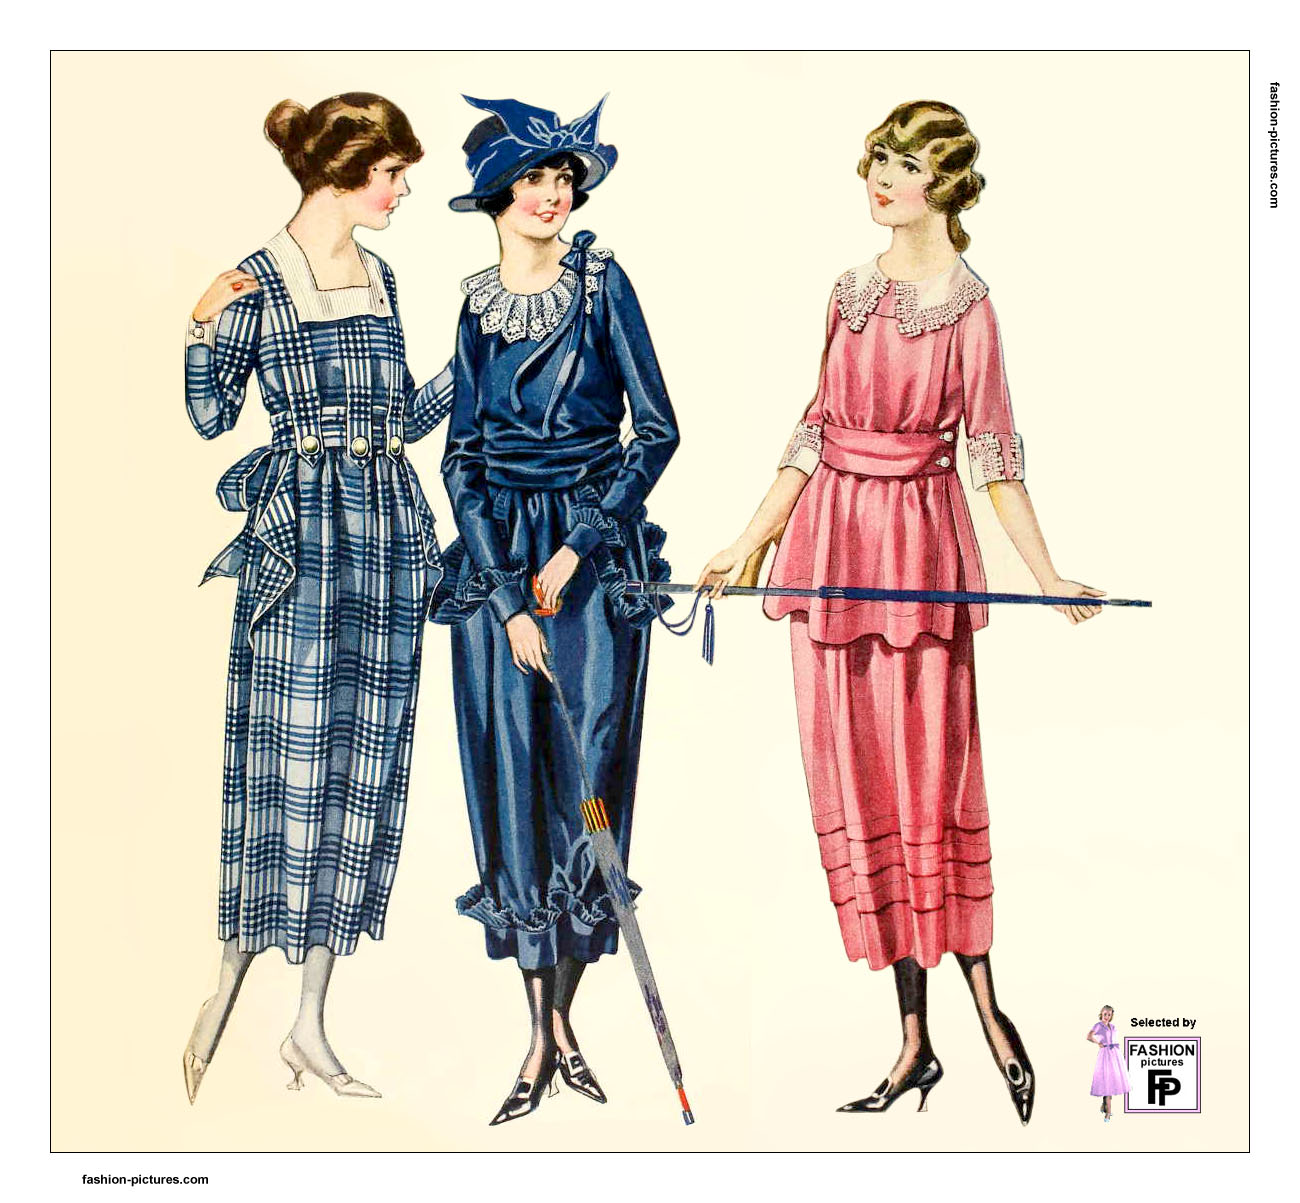 1920-dresses-for-summer.jpg